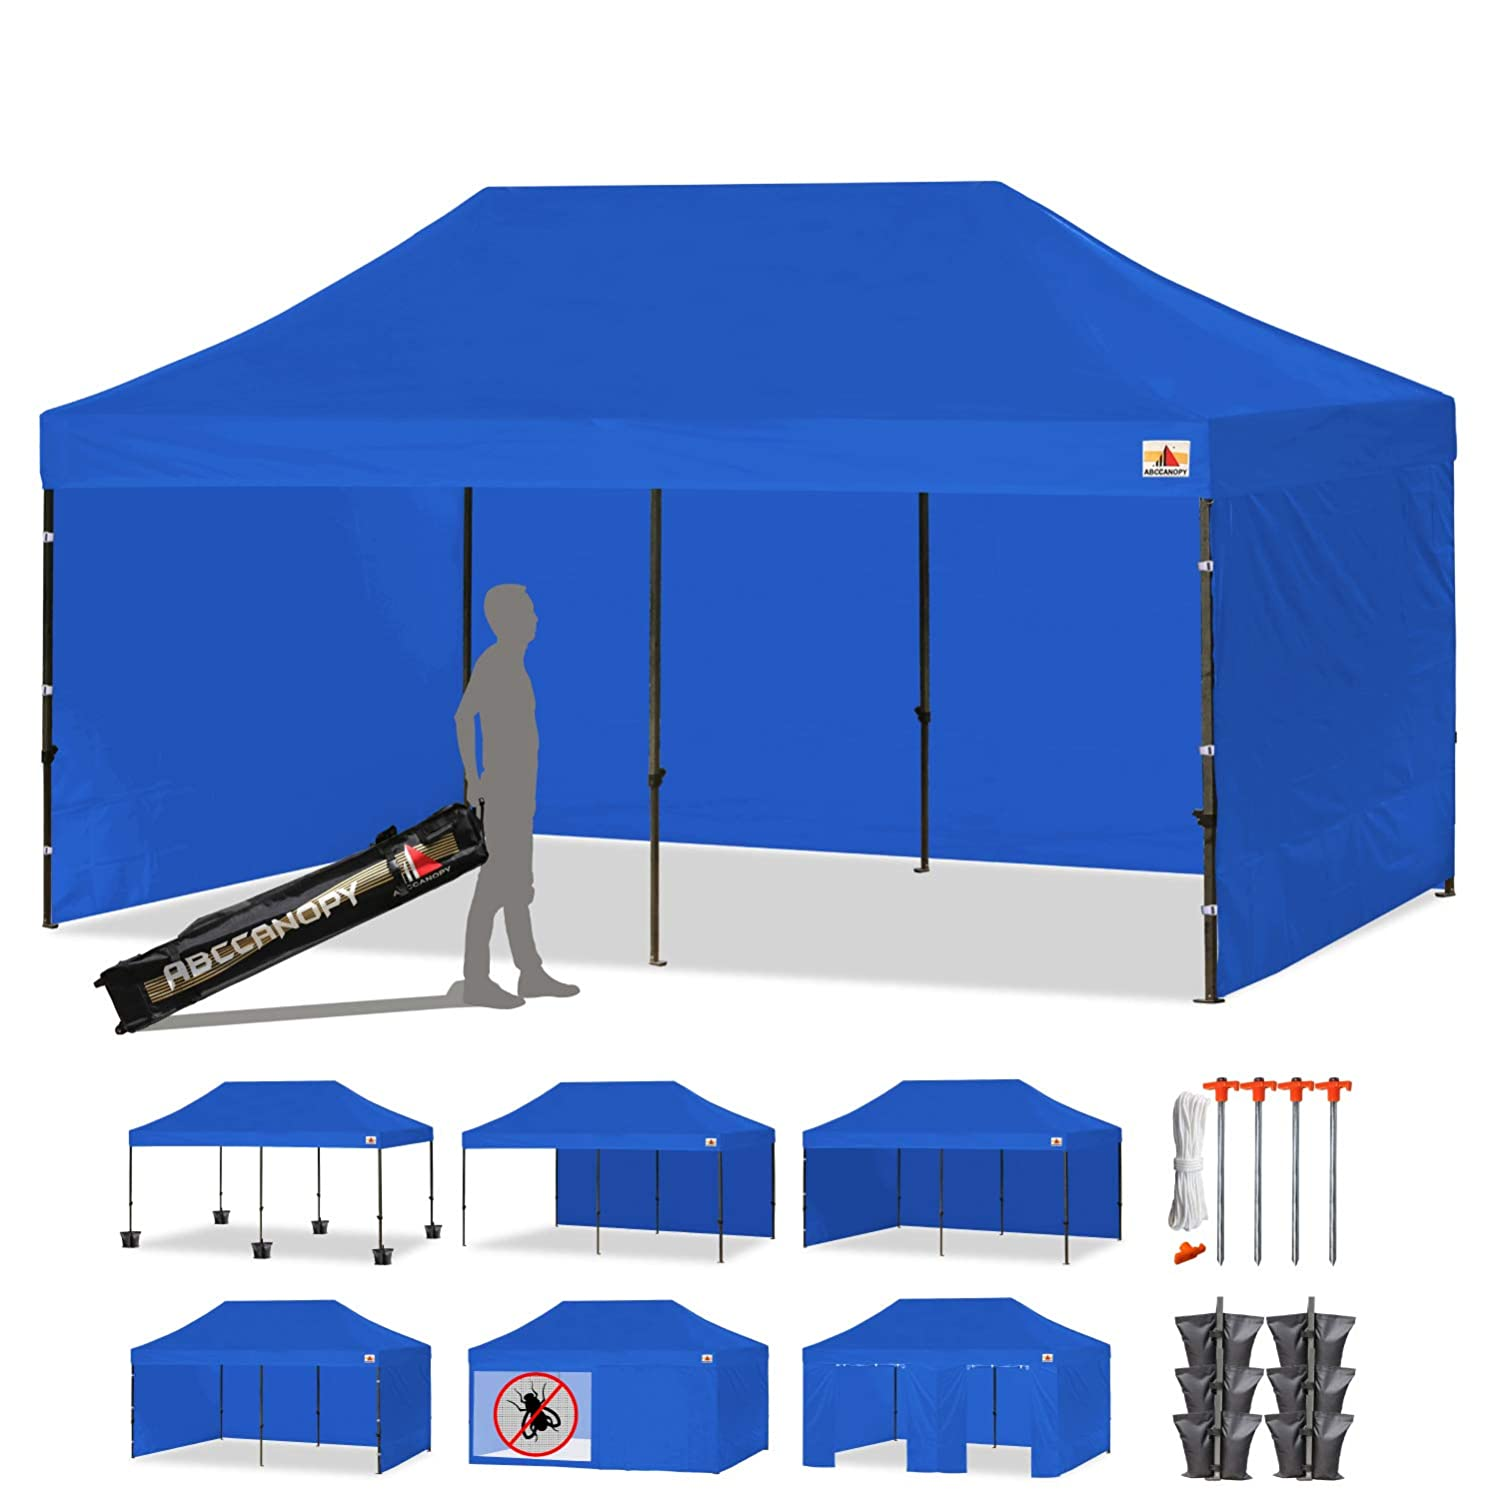 Ez Up Canopy 10x20 >> Abccanopy 18 Colors Deluxe 10x20 Pop Up Canopy Outdoor Party Tent Commercial Gazebo With Enclosure Walls And Wheeled Carry Bag Bonus 6x Weight Bag And